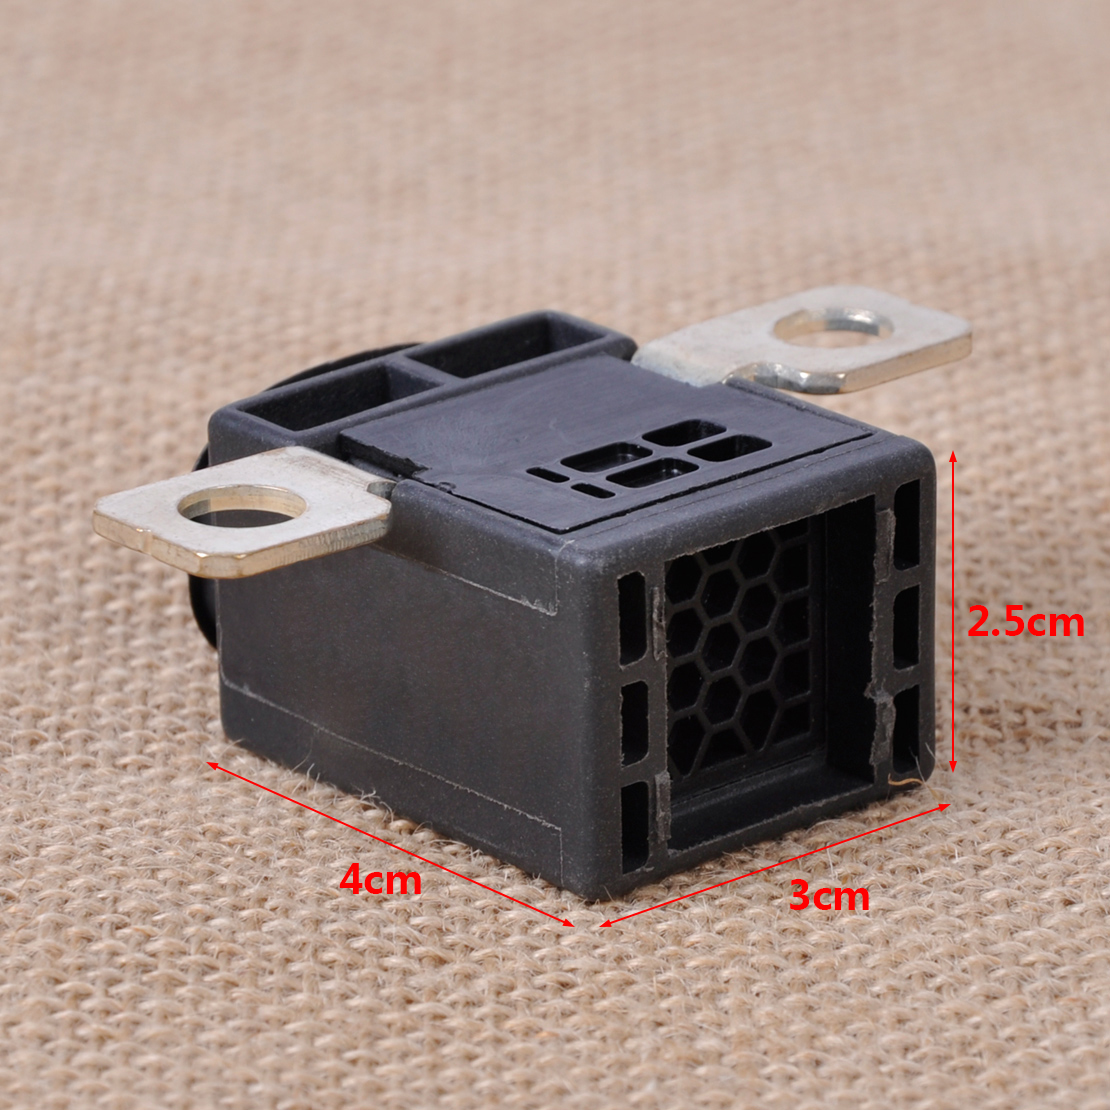 4f0915519 battery fuse overload protection trip for vw. Black Bedroom Furniture Sets. Home Design Ideas